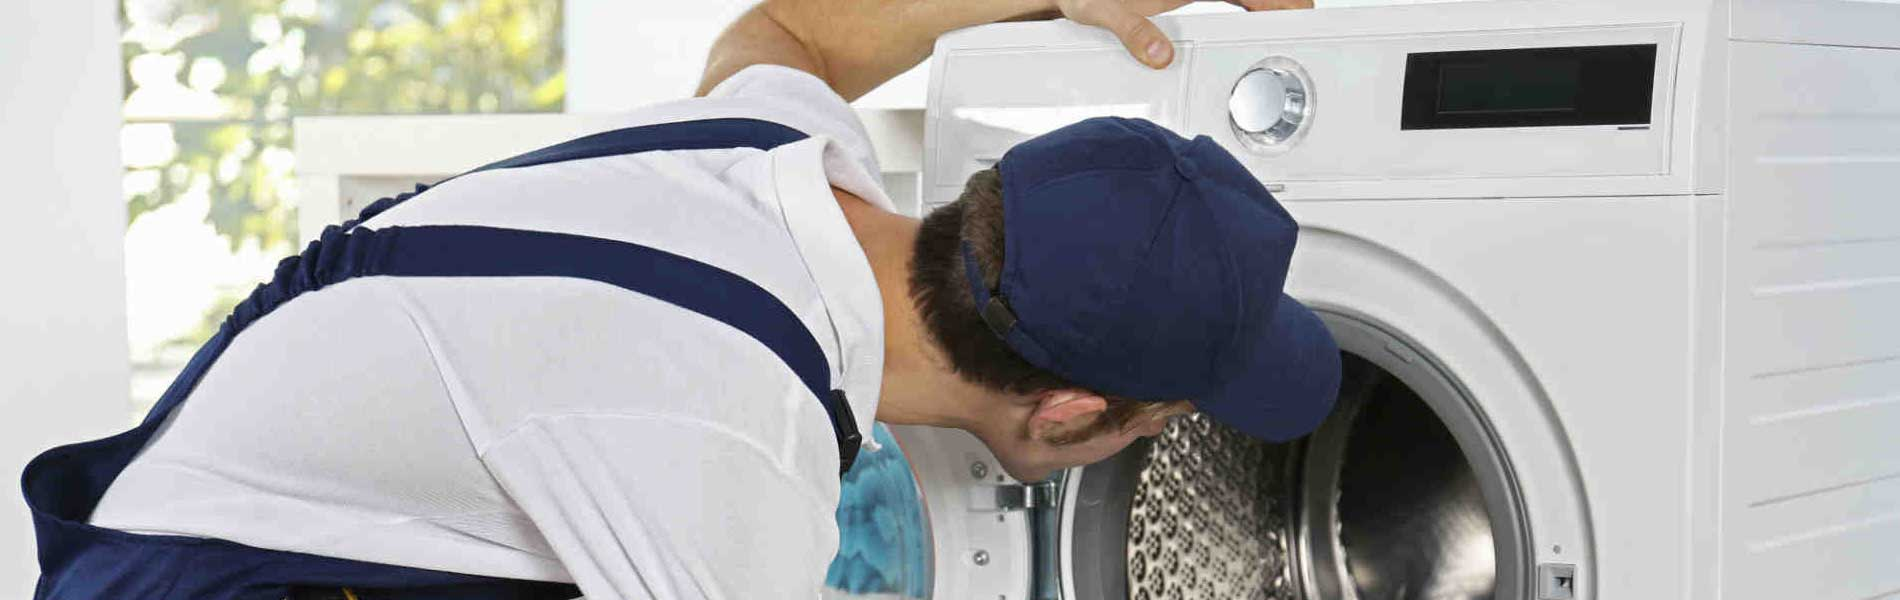 Godrej Washing Machine Mechanic in Tirusulam